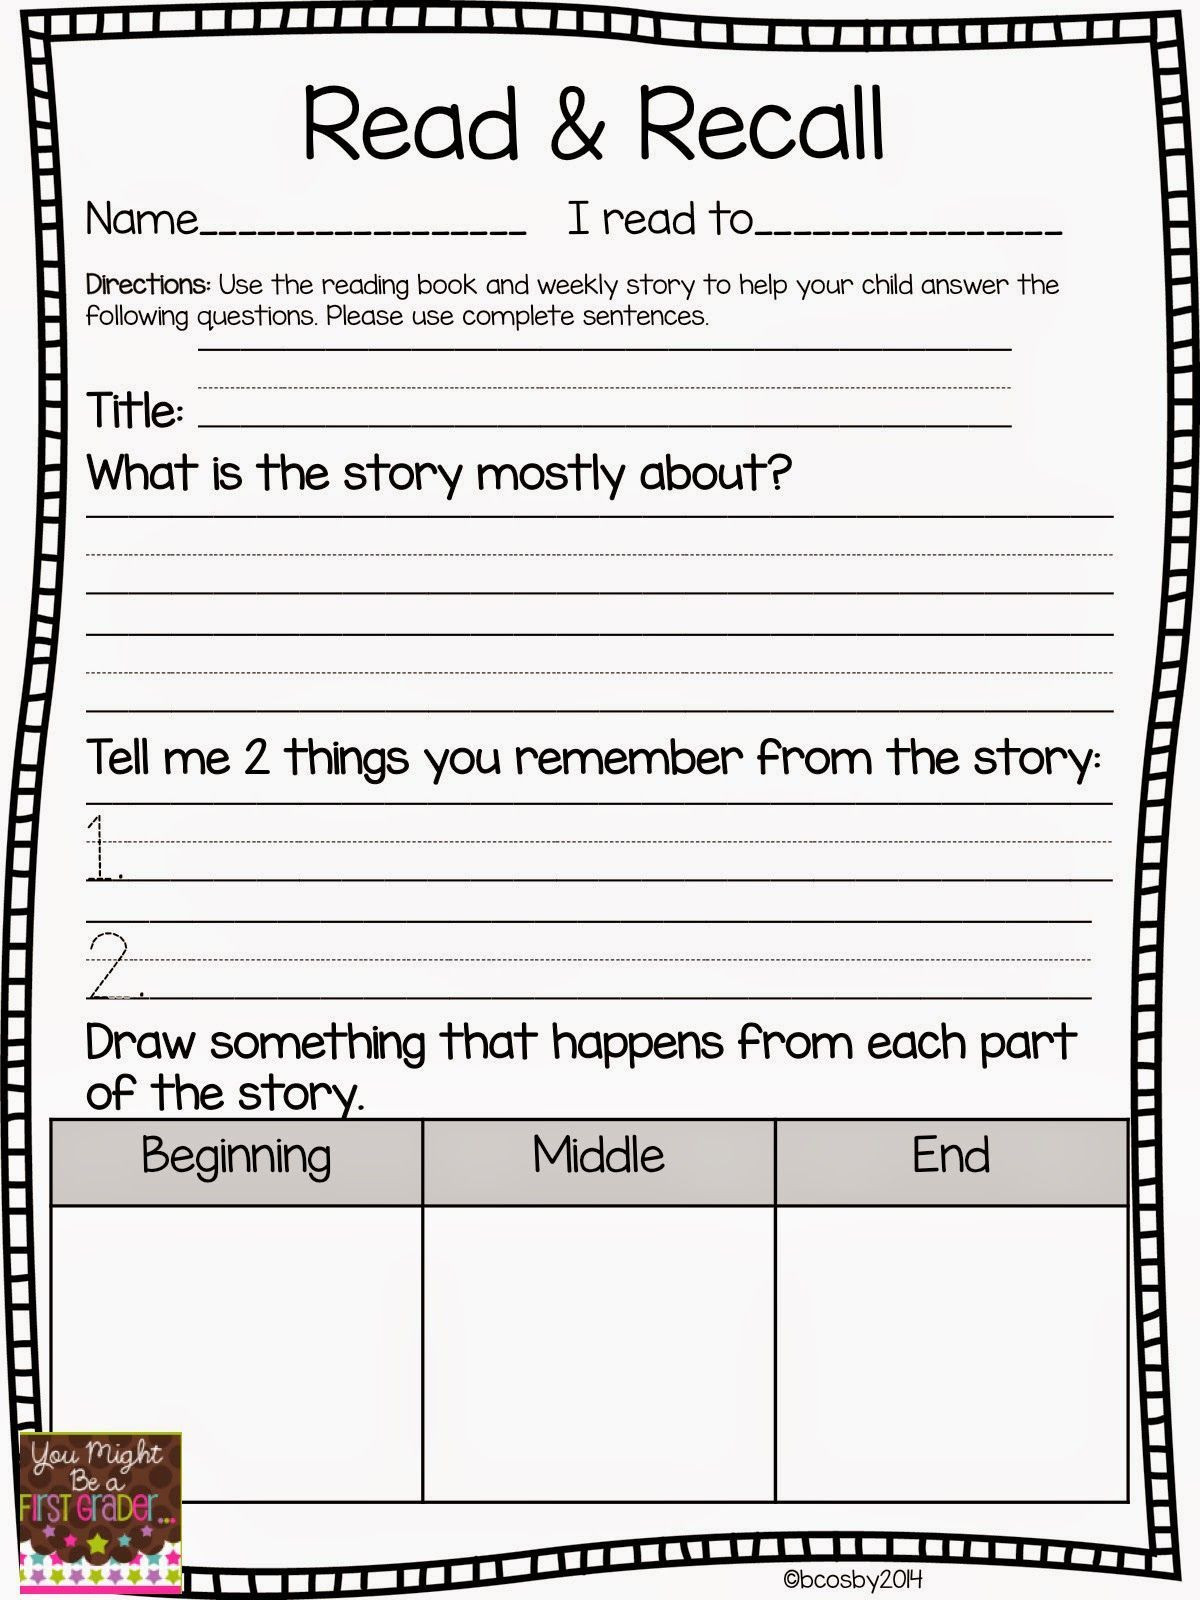 4th Grade Reading Response Worksheets Ab0fb80d2d24d0d C65b6001f746 1 200—1 600 Pixels